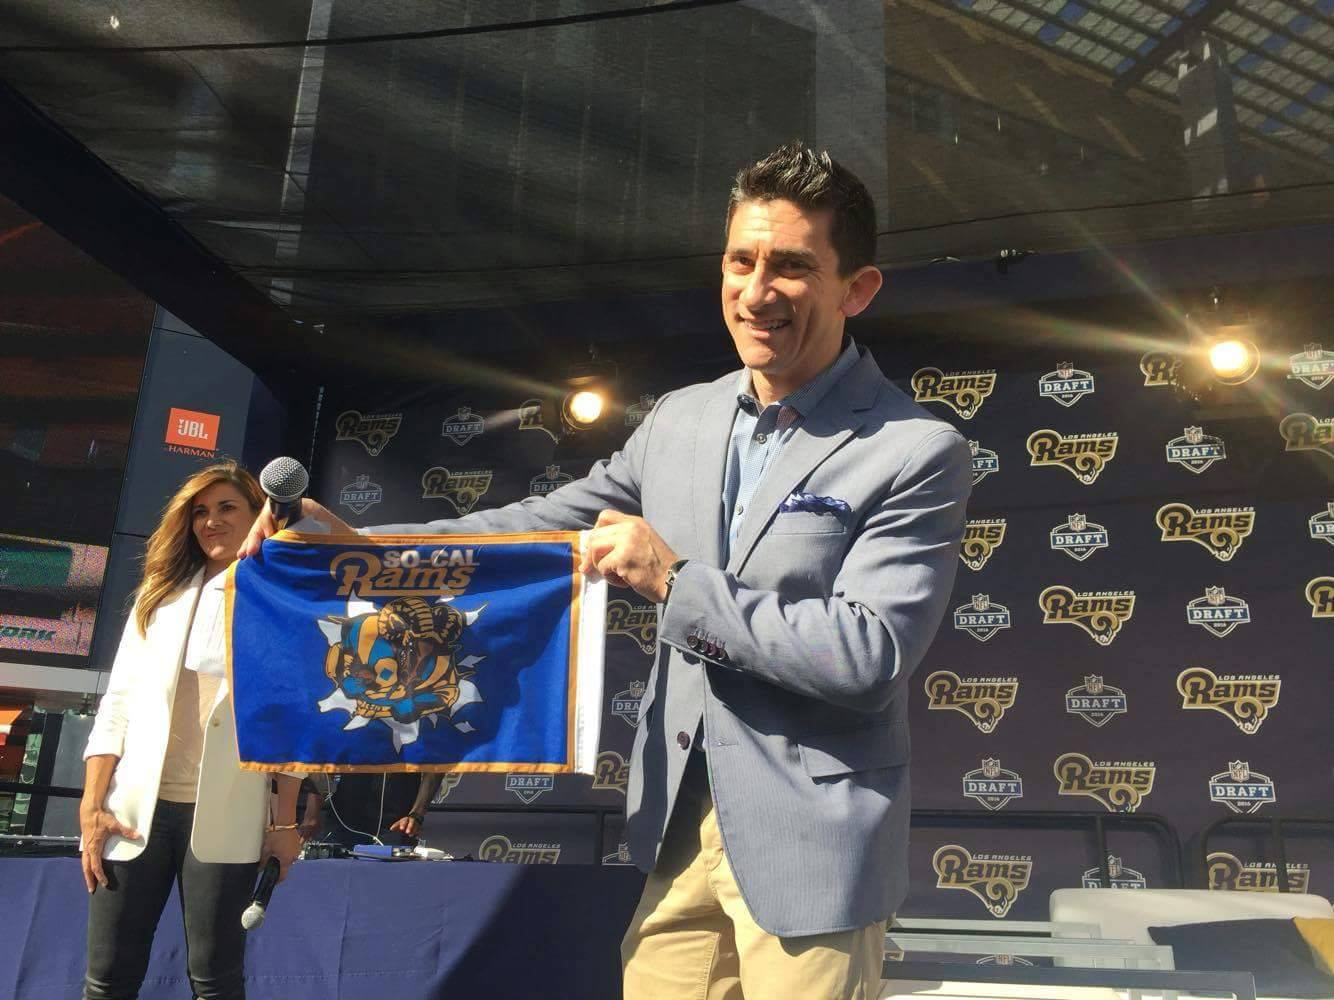 A  ndrew Siciliano  from the  NFL Network,  holding our So Cal Rams Booster Club Car Flag at the LA Rams Draft Party at LA Live. (2016)